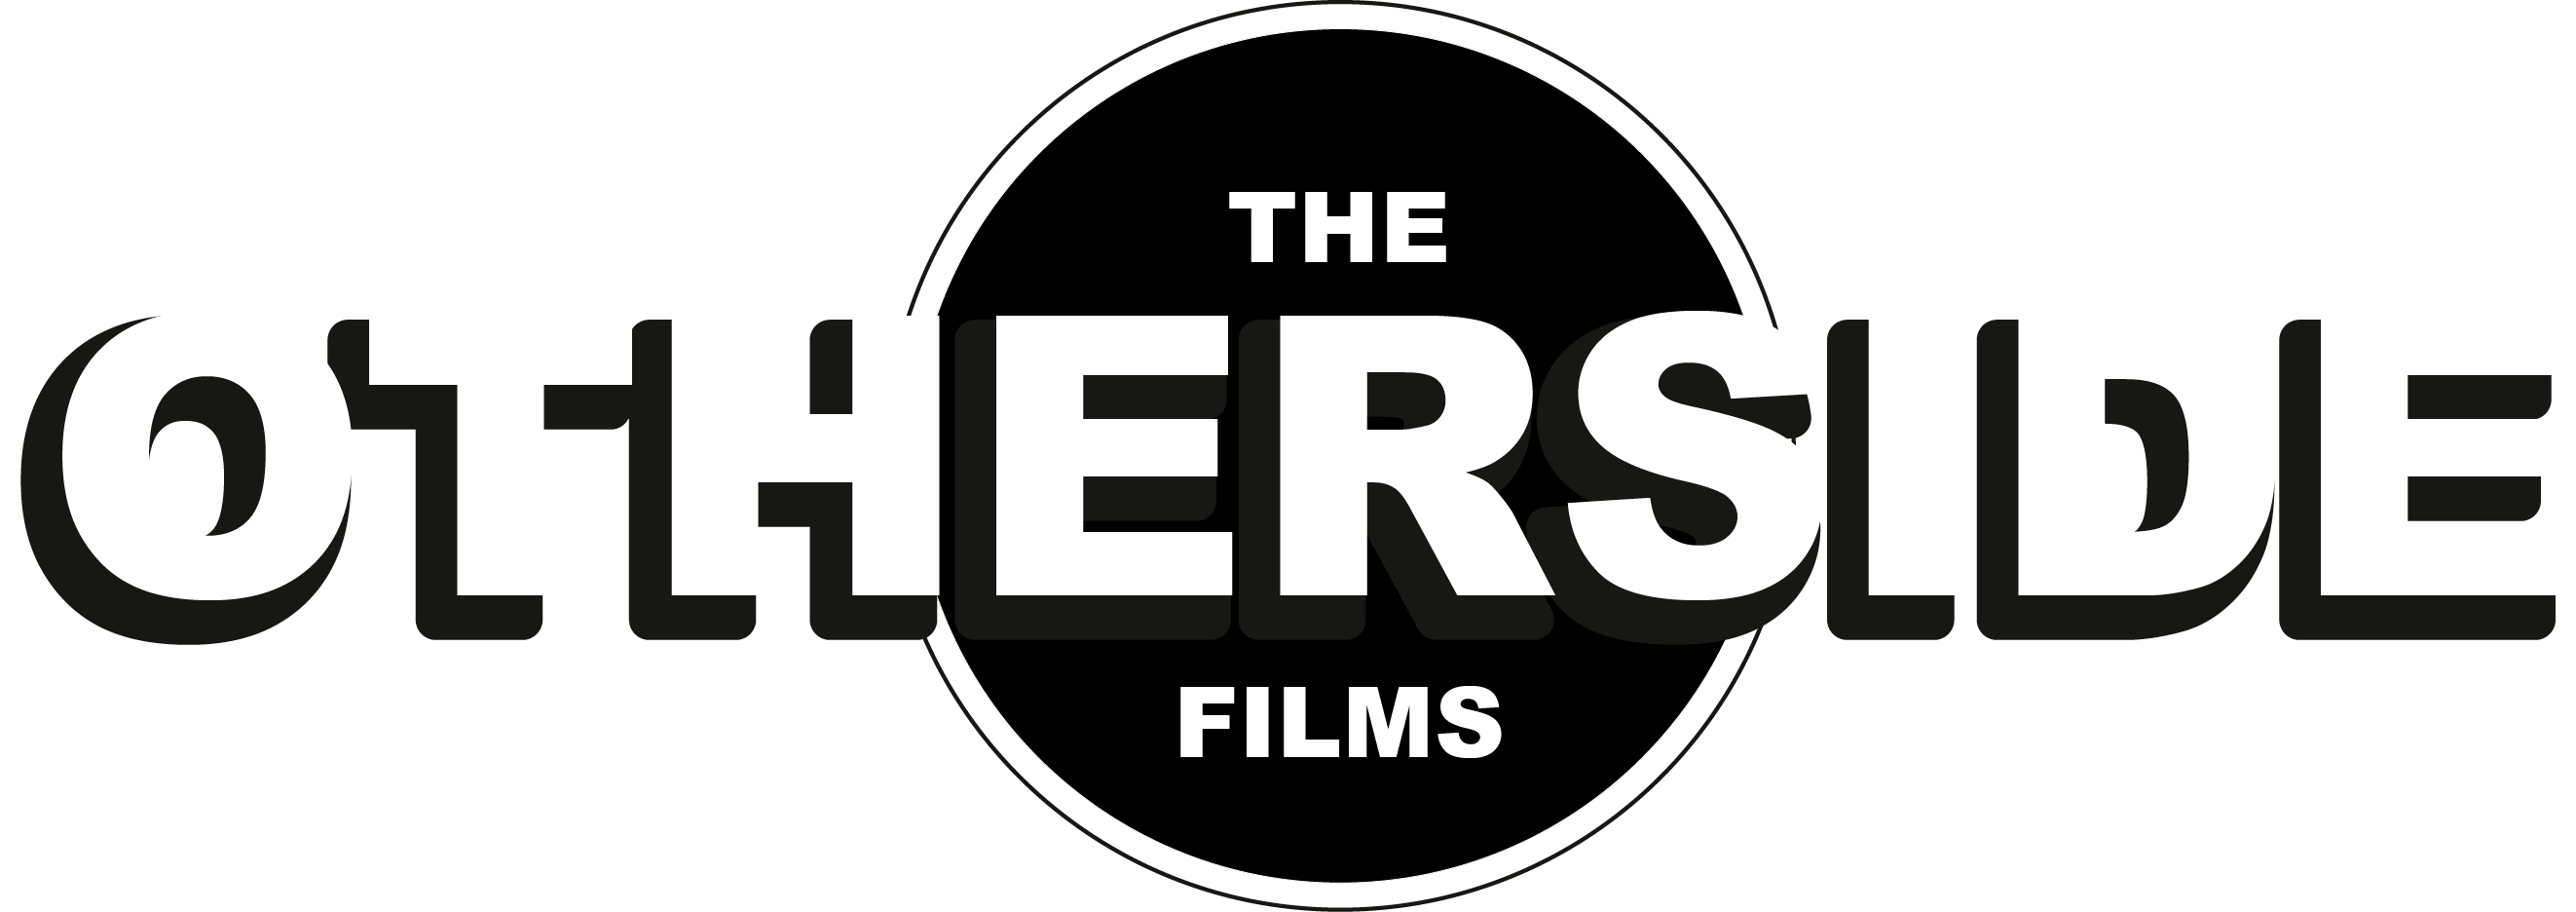 logo-the-other-side-films-b